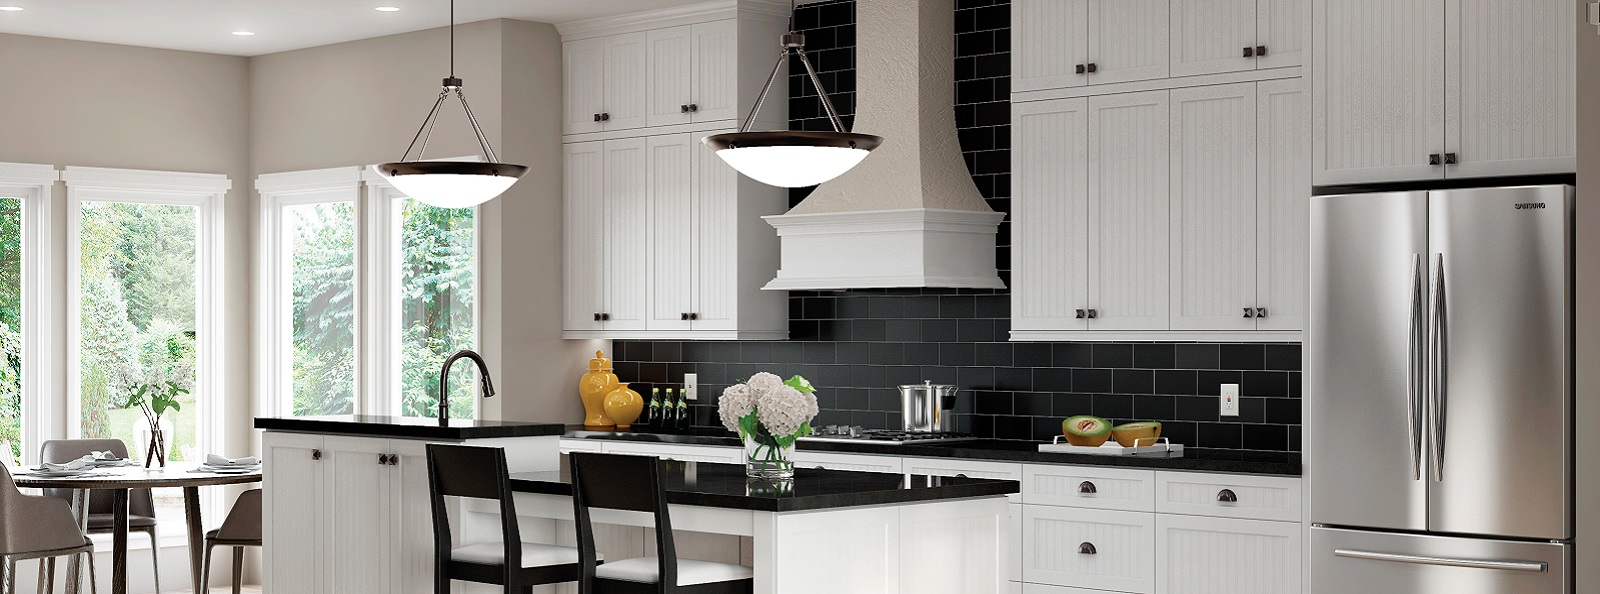 Middleton Whiteout Cabinets